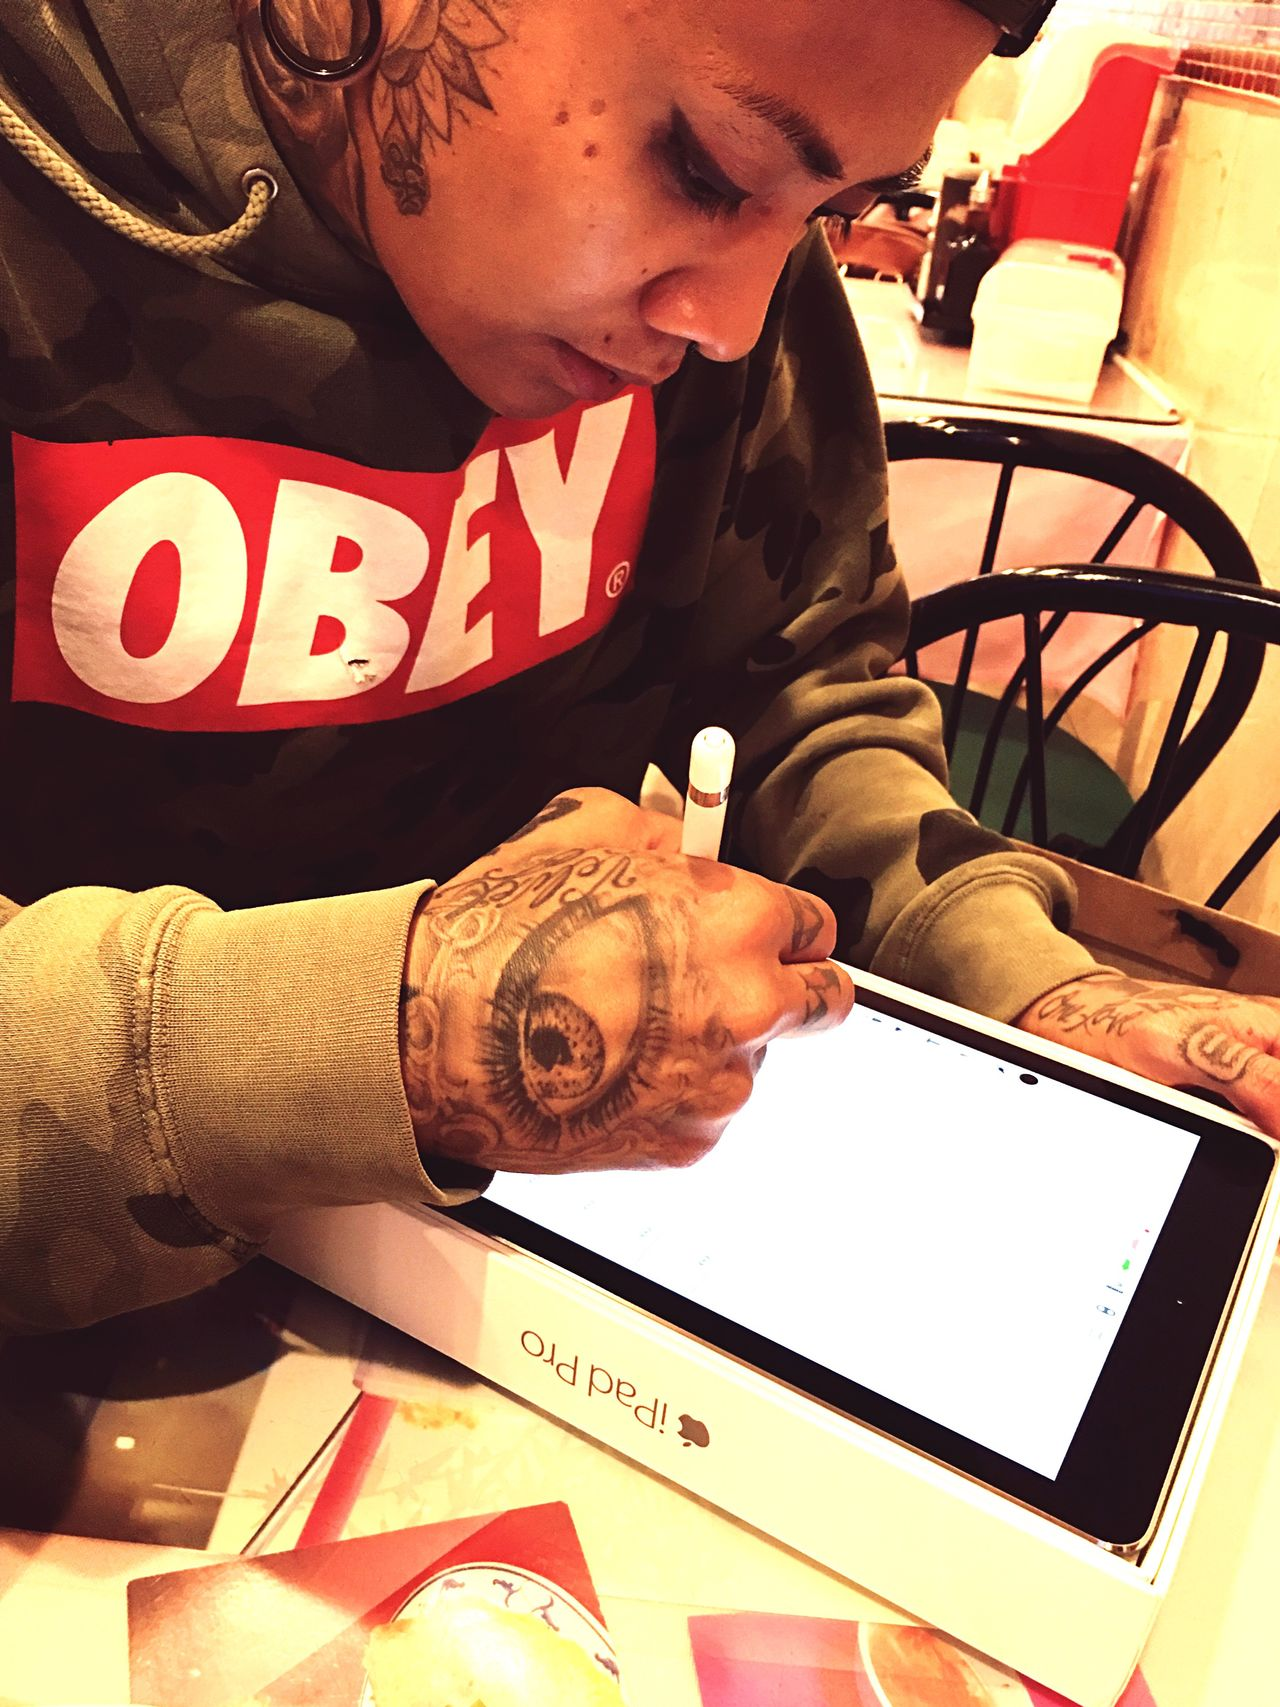 Young Adult Tattoos Ipad Chinatown New York City OBEY Apple Ipencil Person Style Swag Lgbt